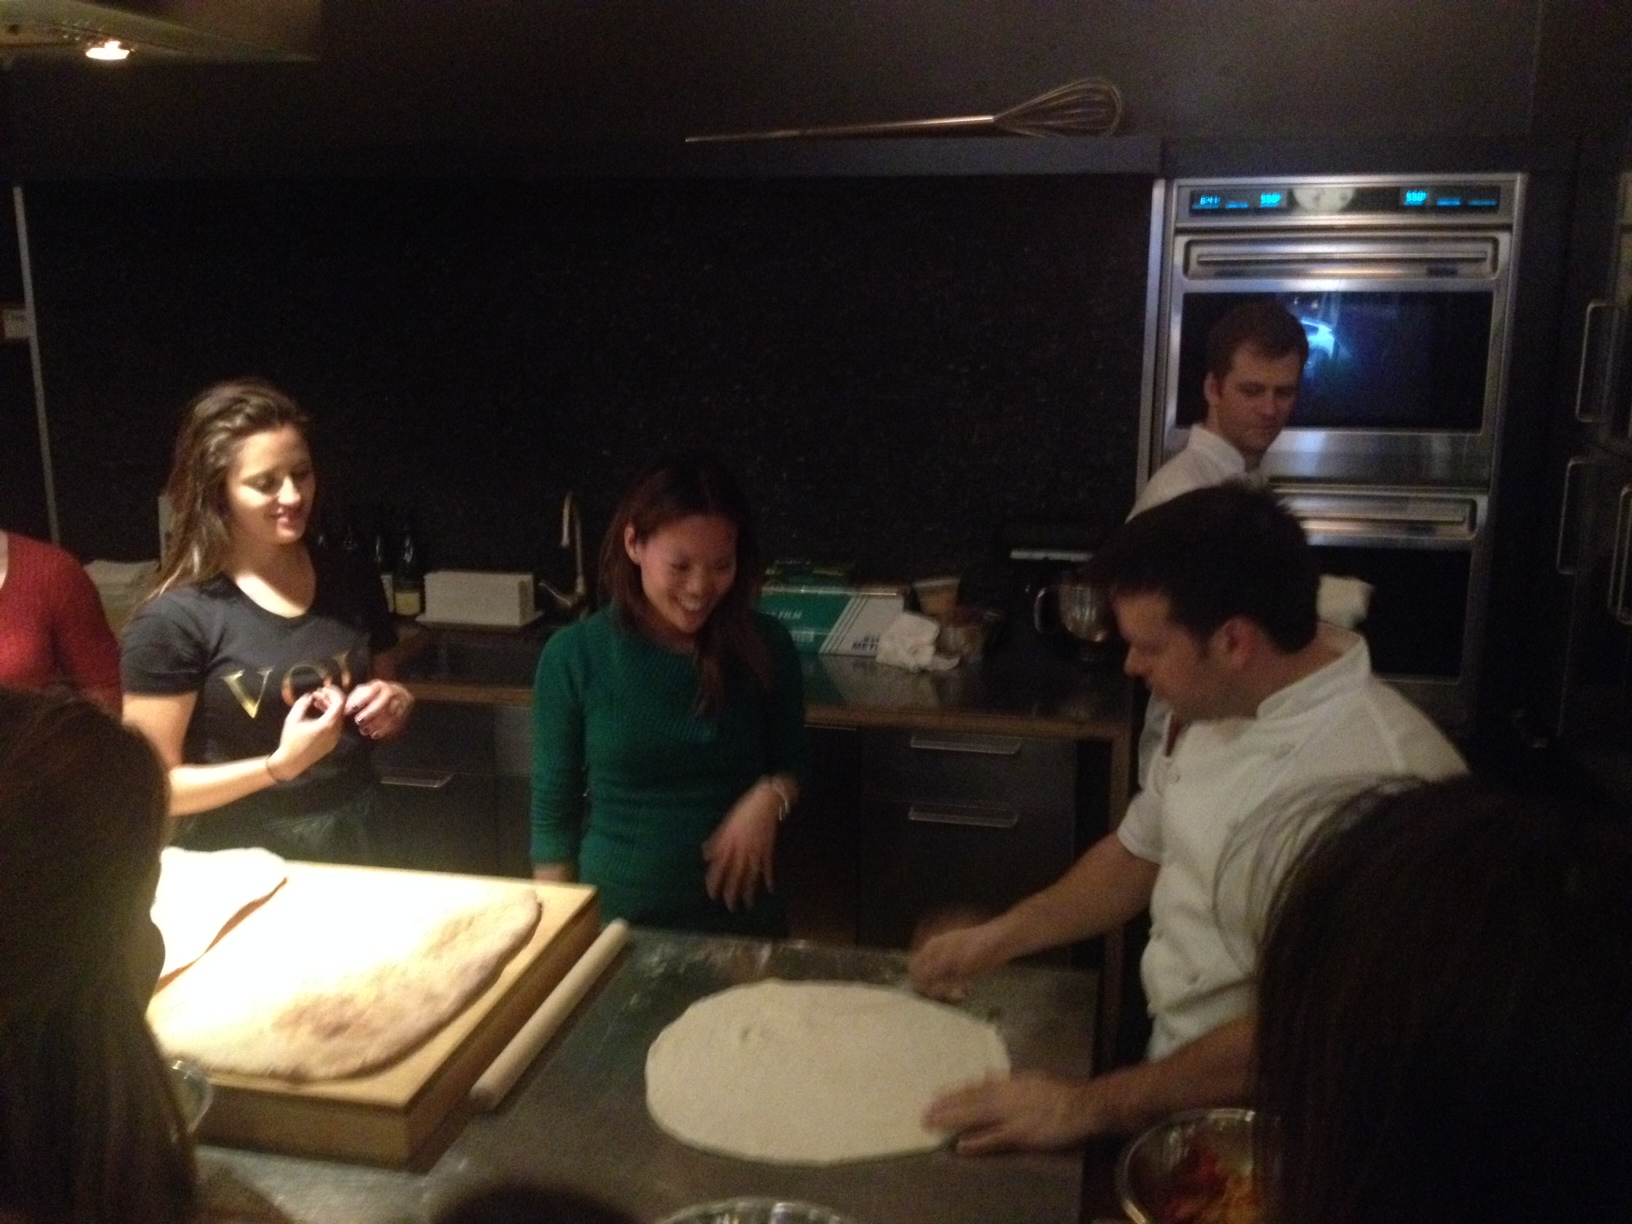 Pizza Making in Progress!